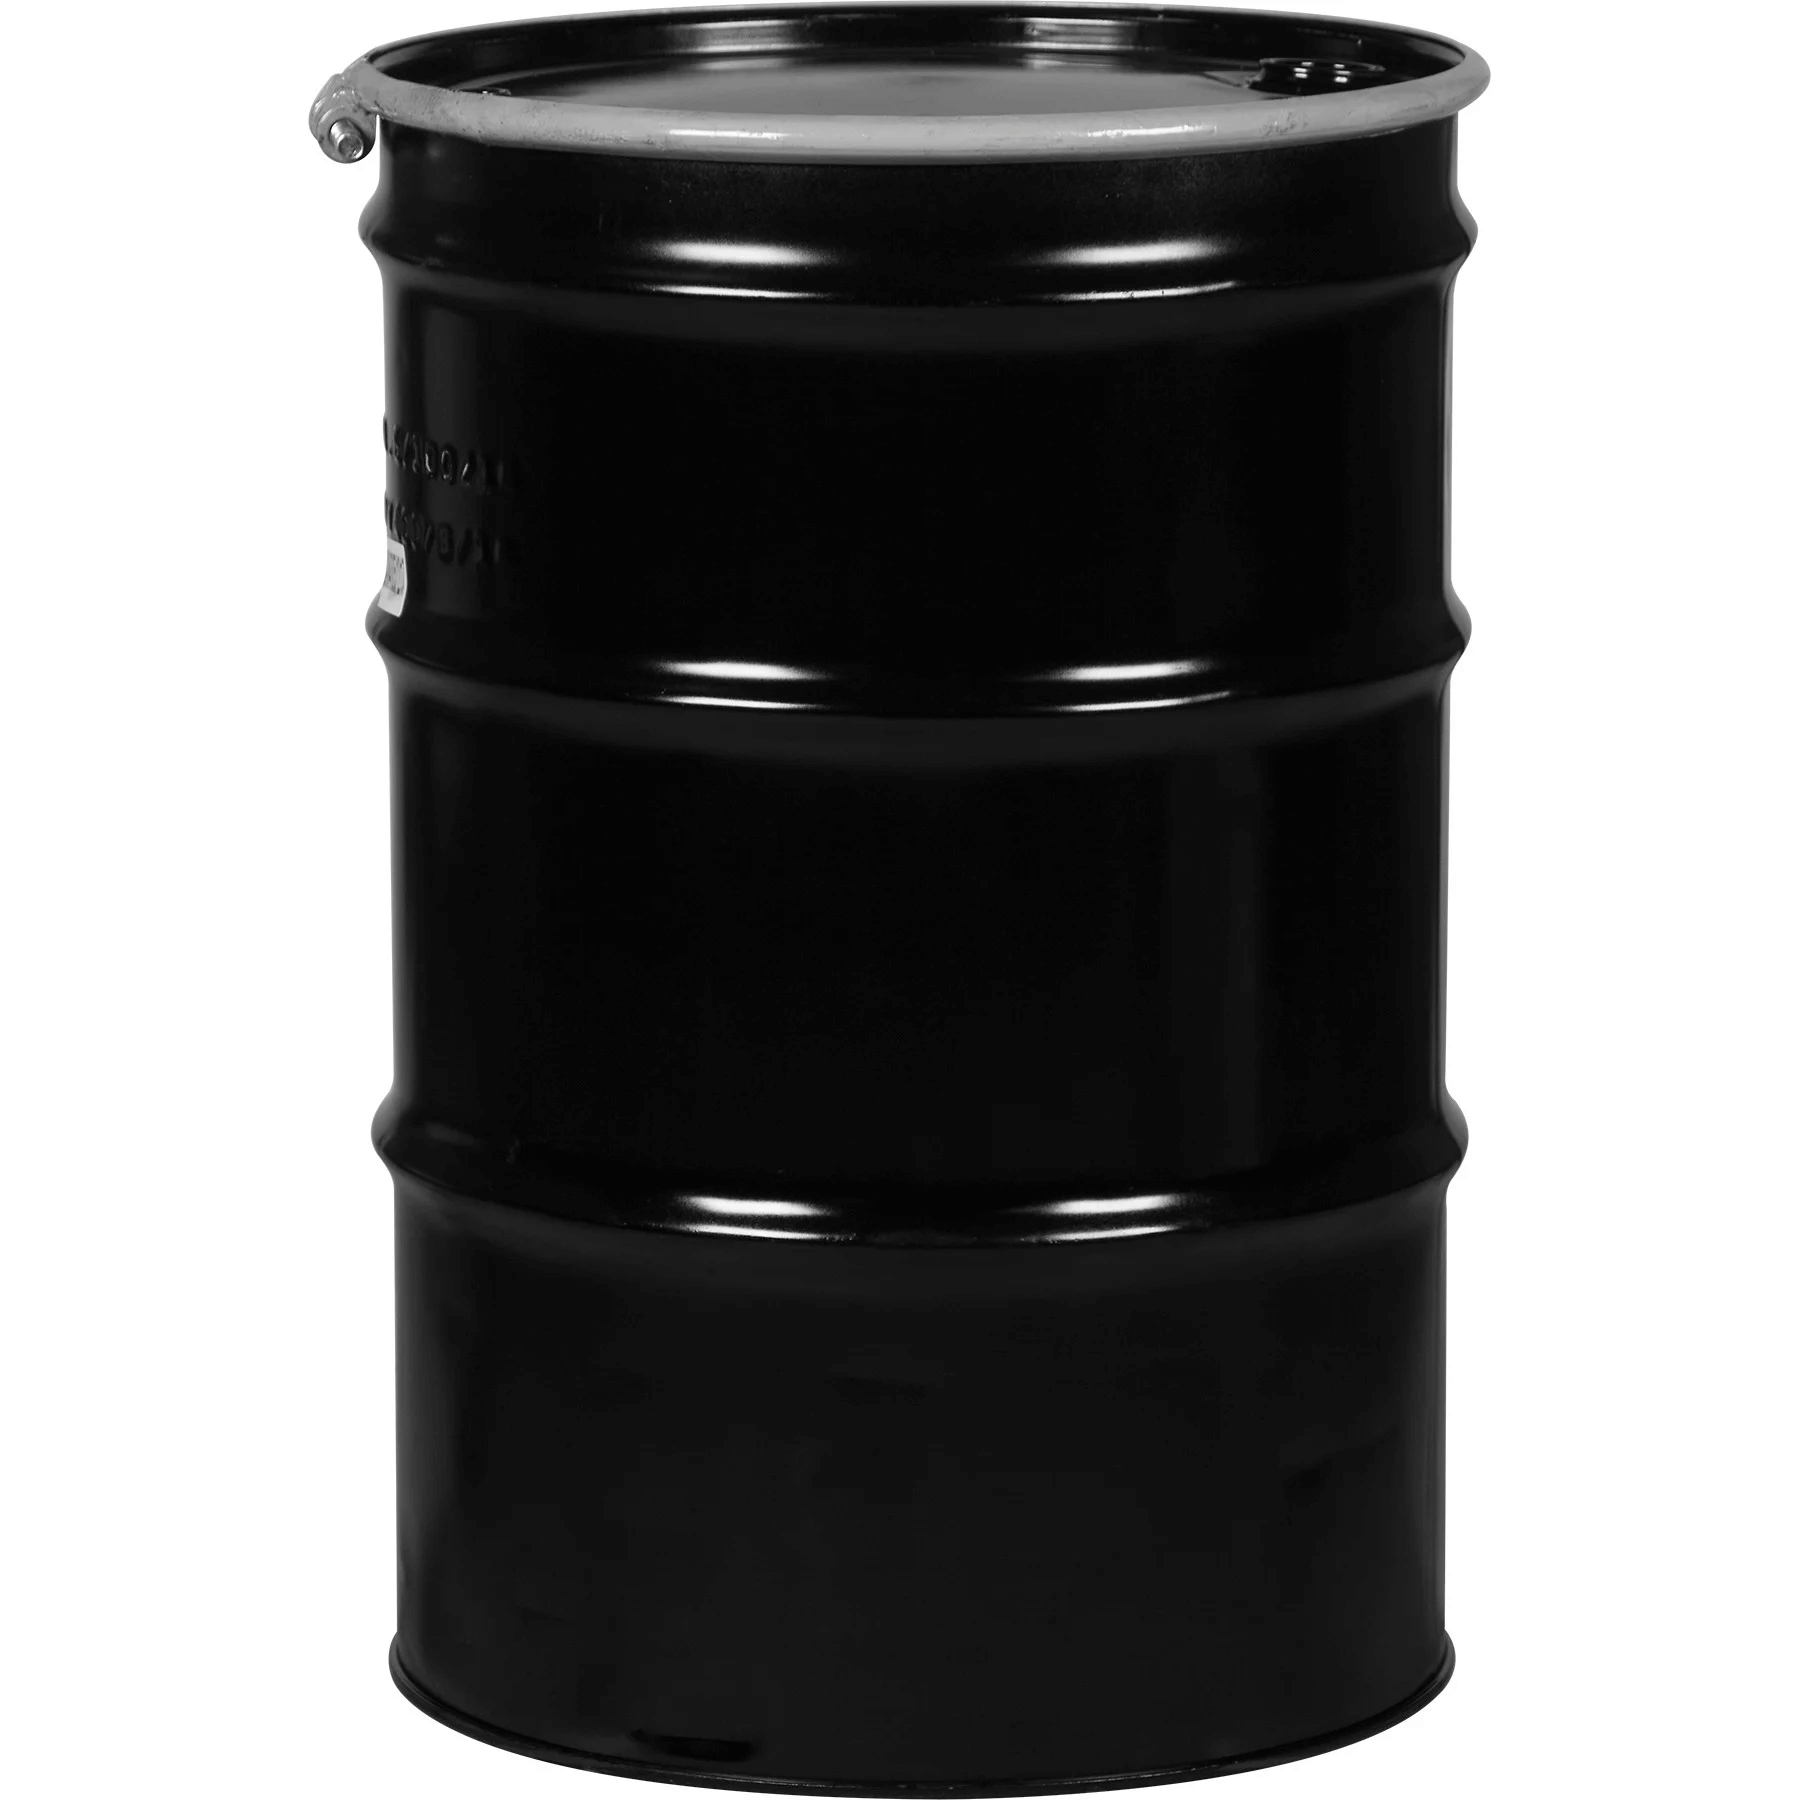 Recovery Drum (55 gallon)